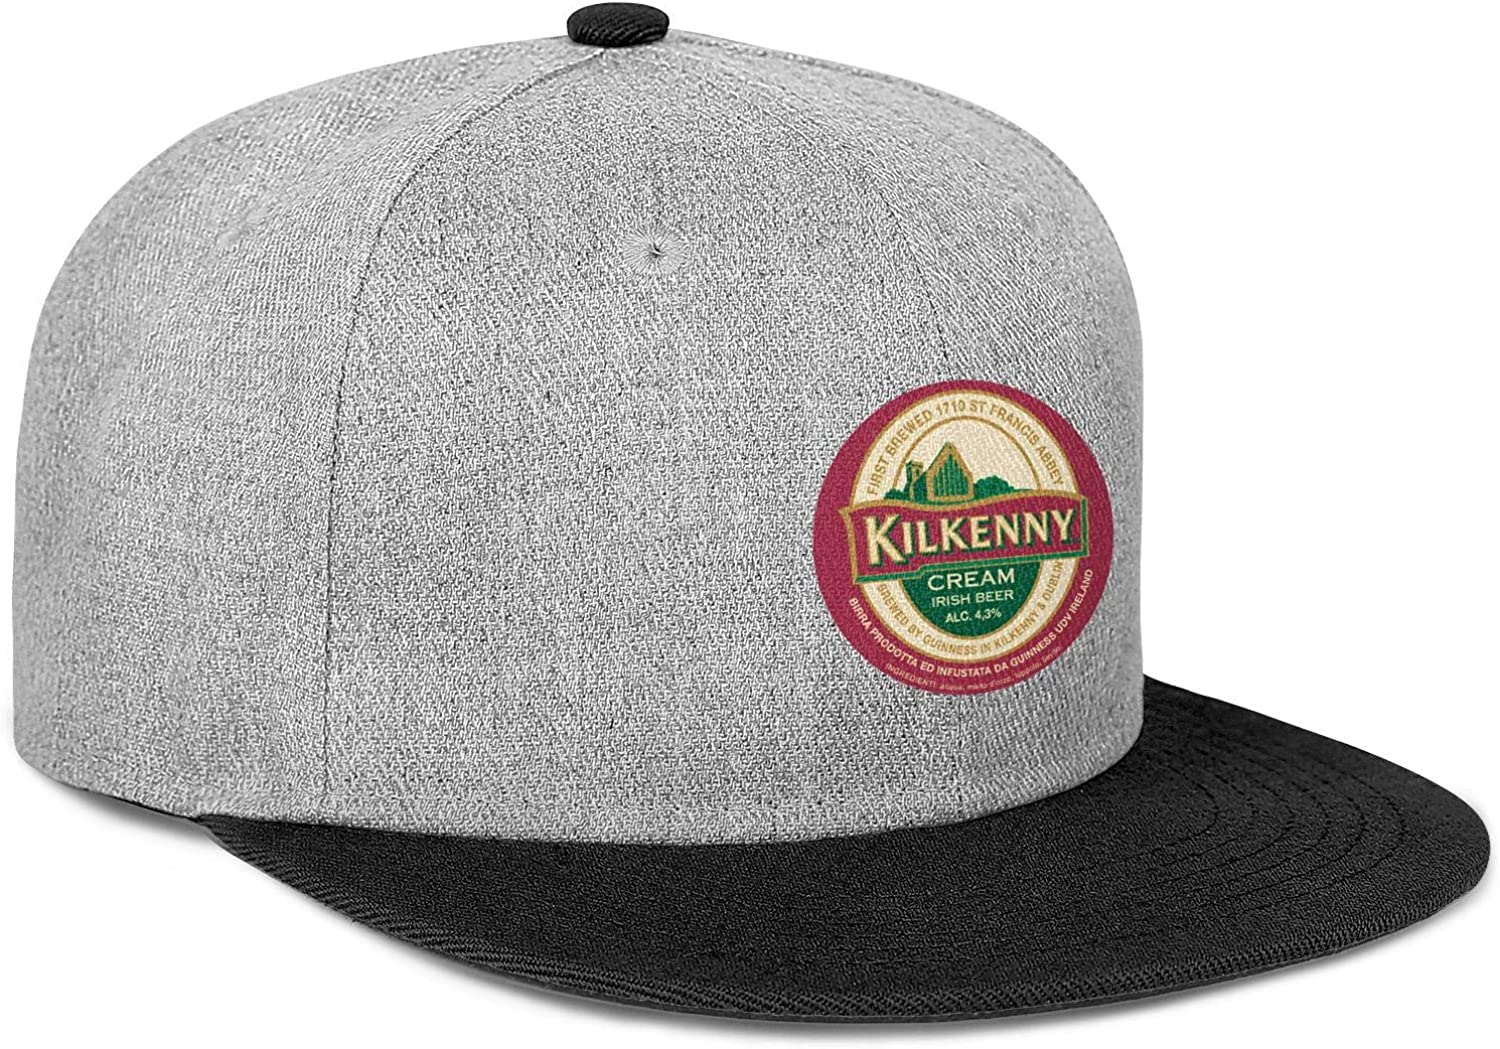 Kilkenny Logo Mens Womens Wool Vintage Cap Adjustable Snapback Summer Hat